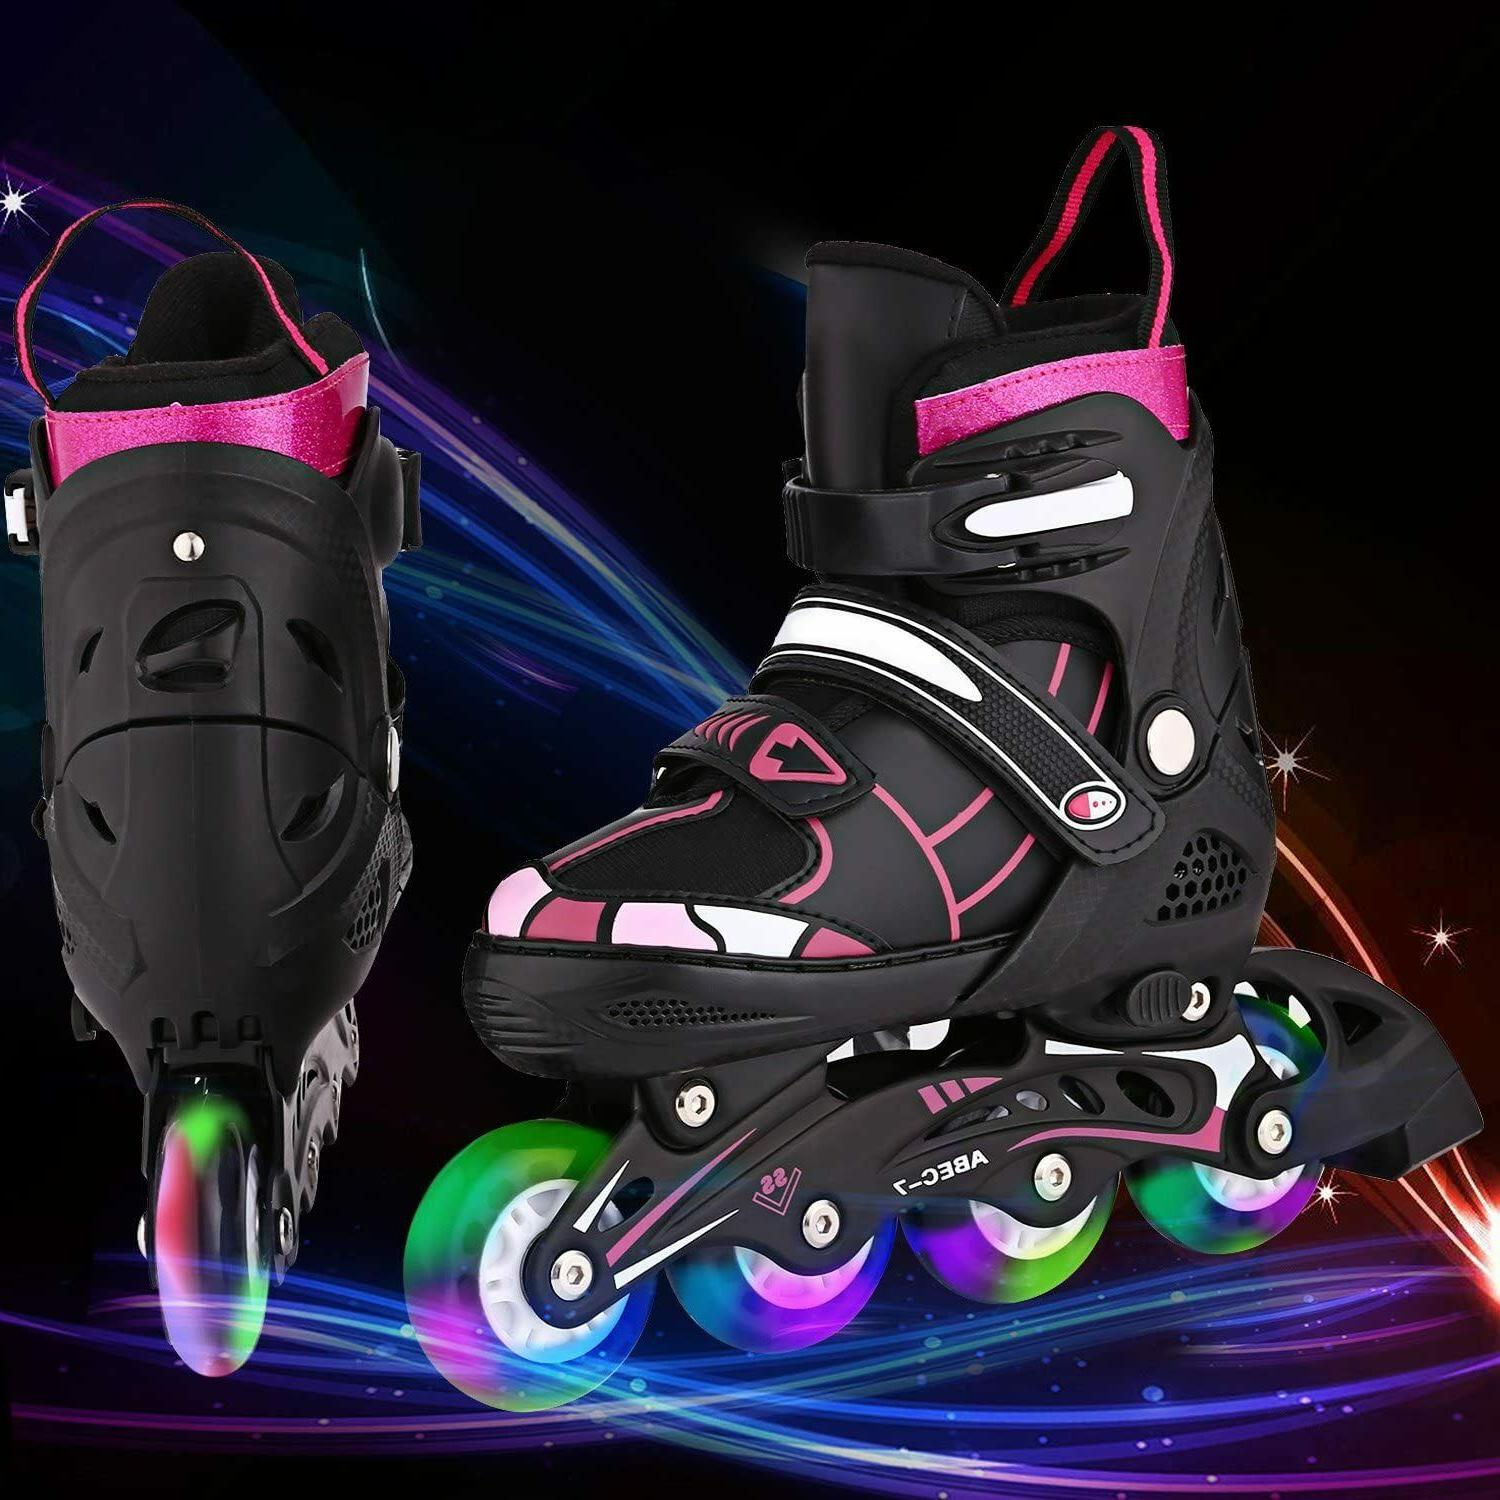 CAROMA Roller Blades Gift for Adult / Kid